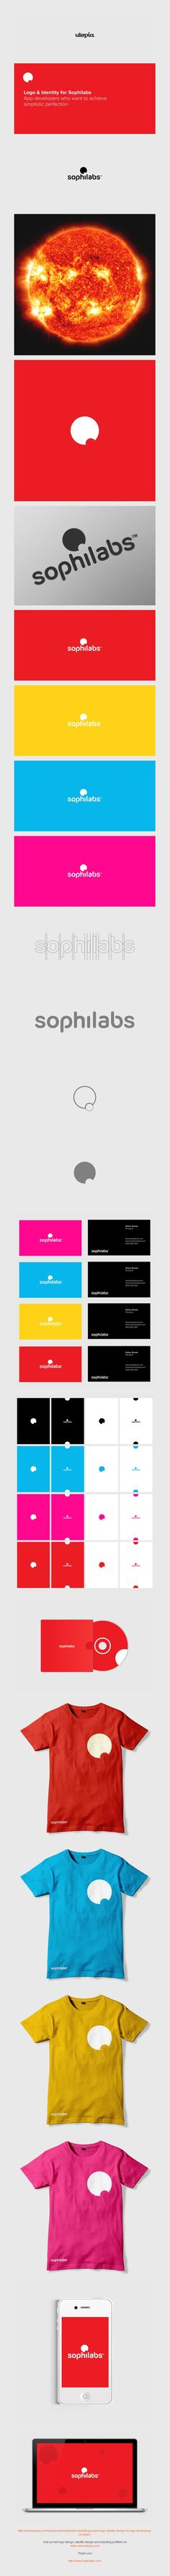 Sophilabs logo and corporate identity design by Utopia Branding Agency